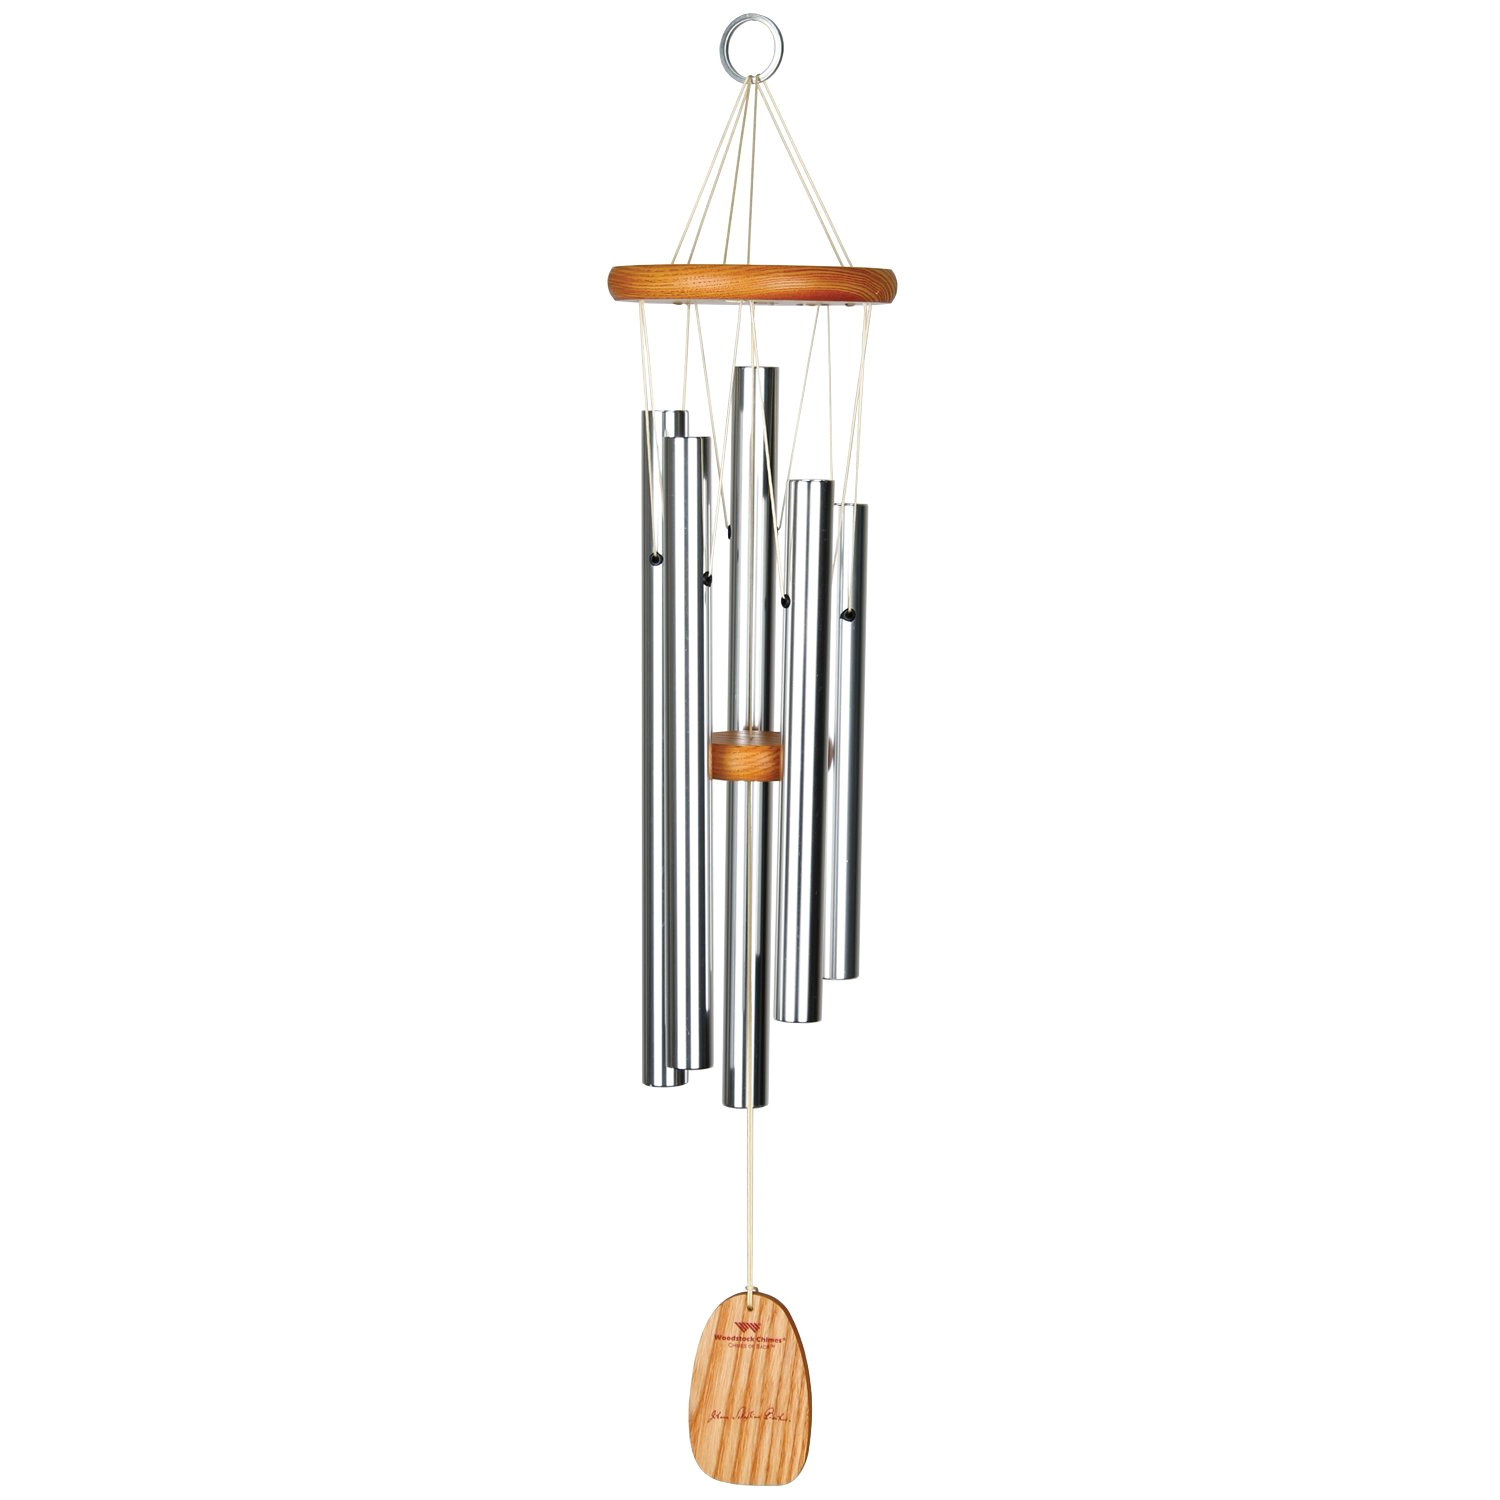 amazon com woodstock chimes cbwsi bach chime fine tuned wind chimes garden outdoor